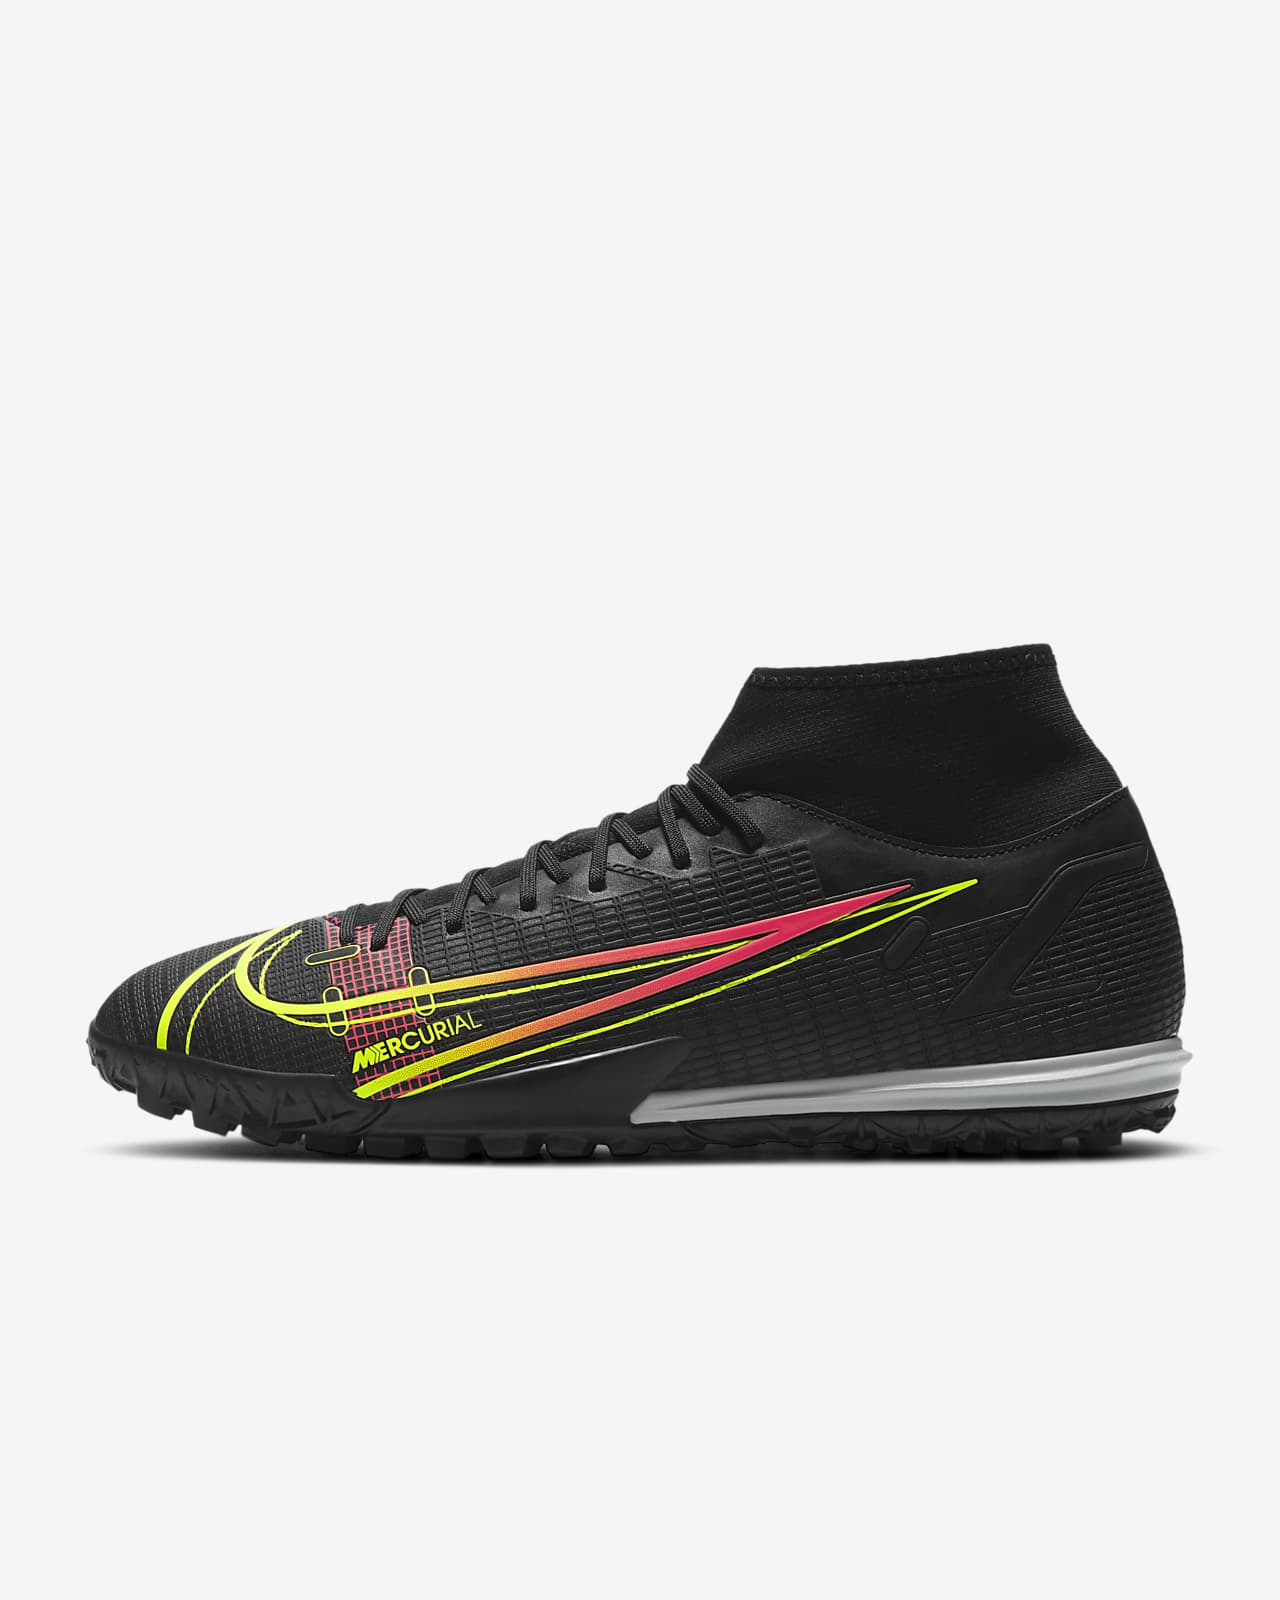 Chaussure de football pour surface synthétique Nike Mercurial Superfly 8 Academy TF